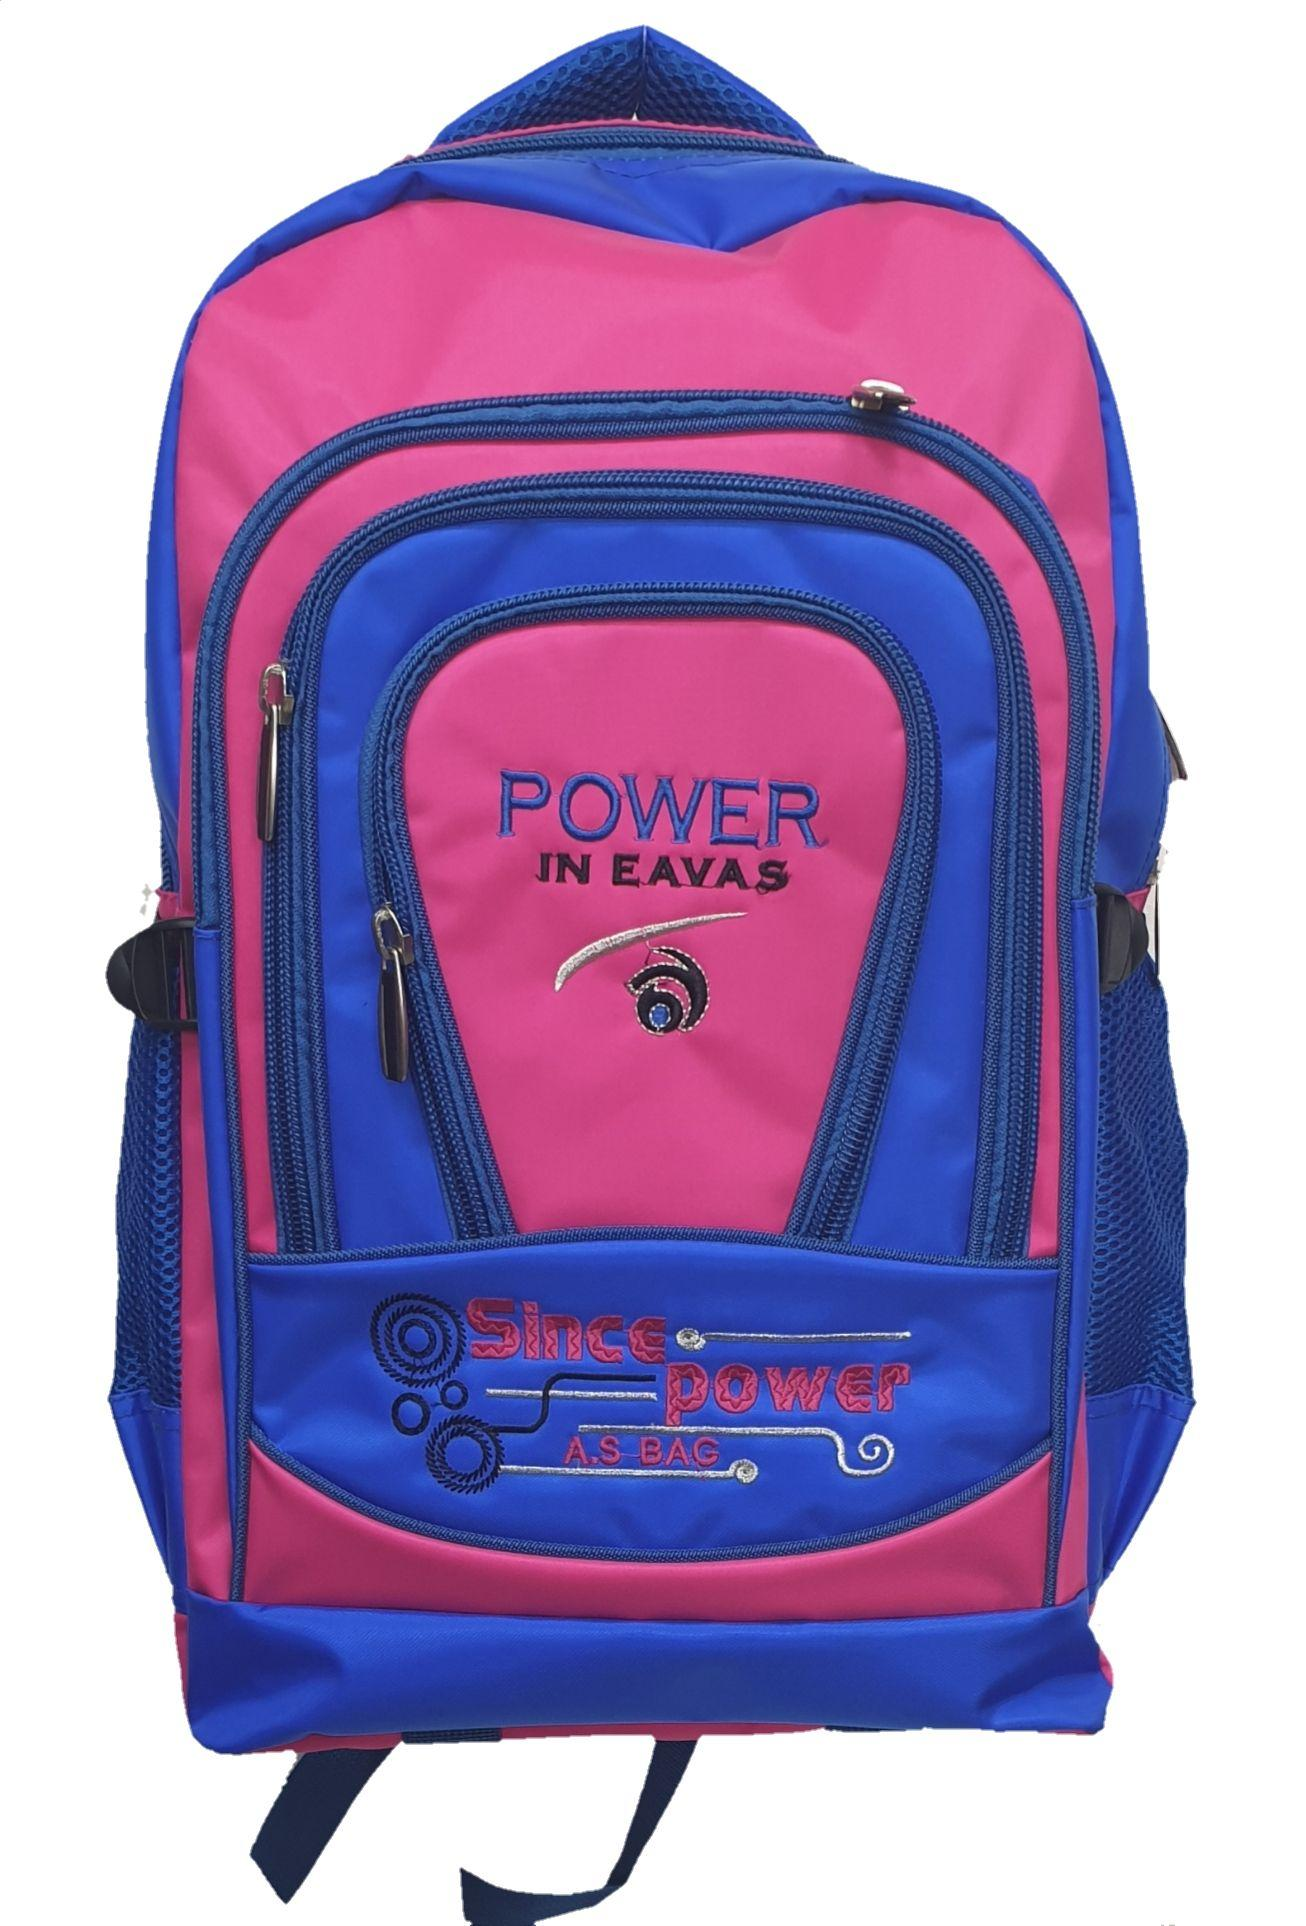 0d0610847f70 School Bags Prices  Online in Pakistan - Daraz.pk